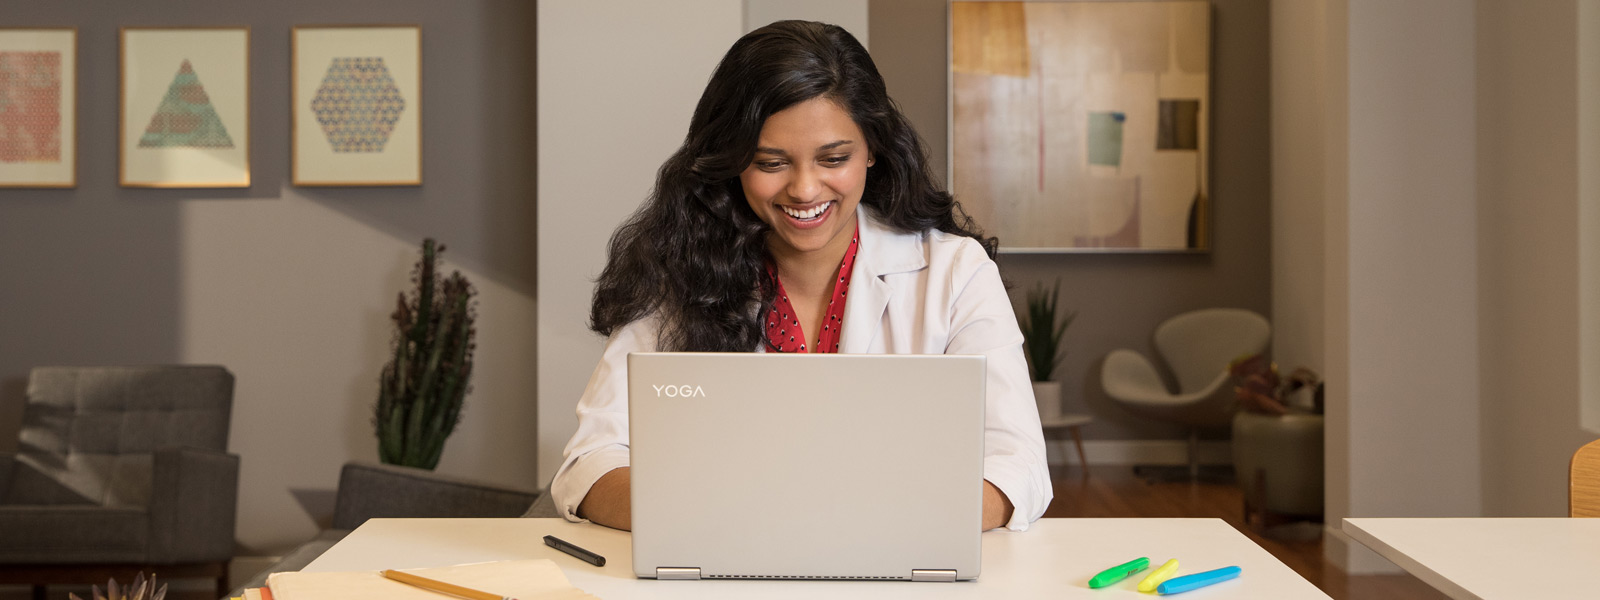 Smiling student using a Windows 10 laptop while sitting at a desk